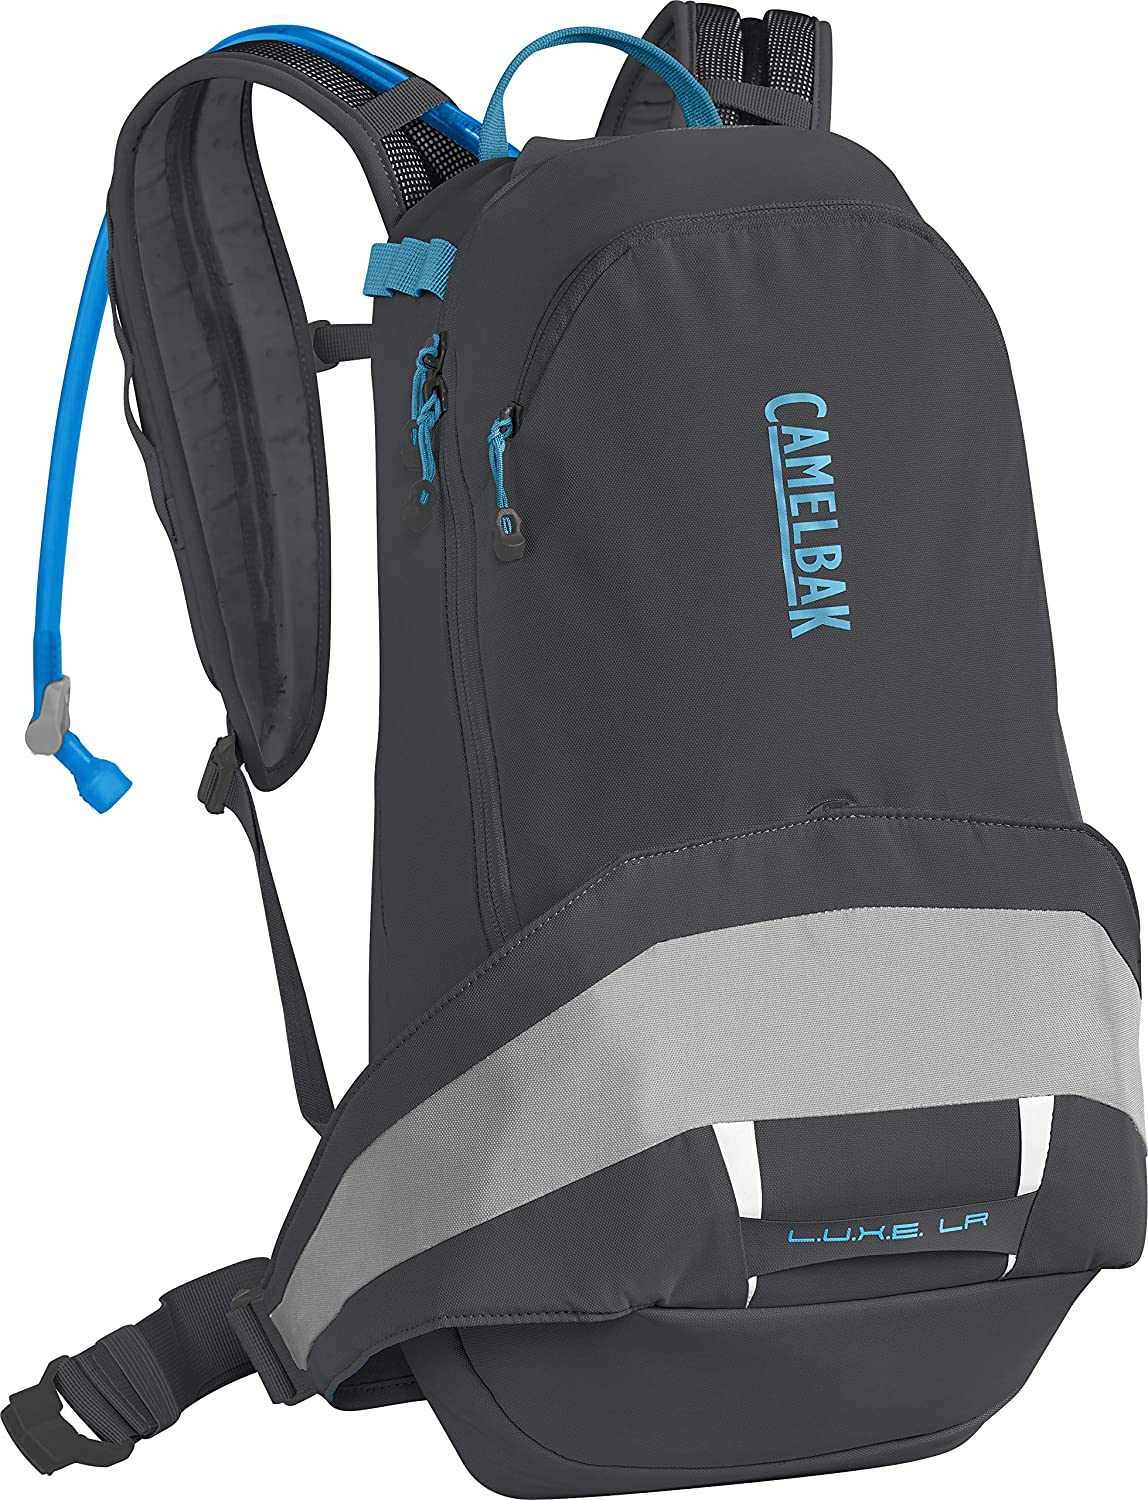 CamelBak L.U.X.E. LR 14 100oz Women's Hydration Backpack